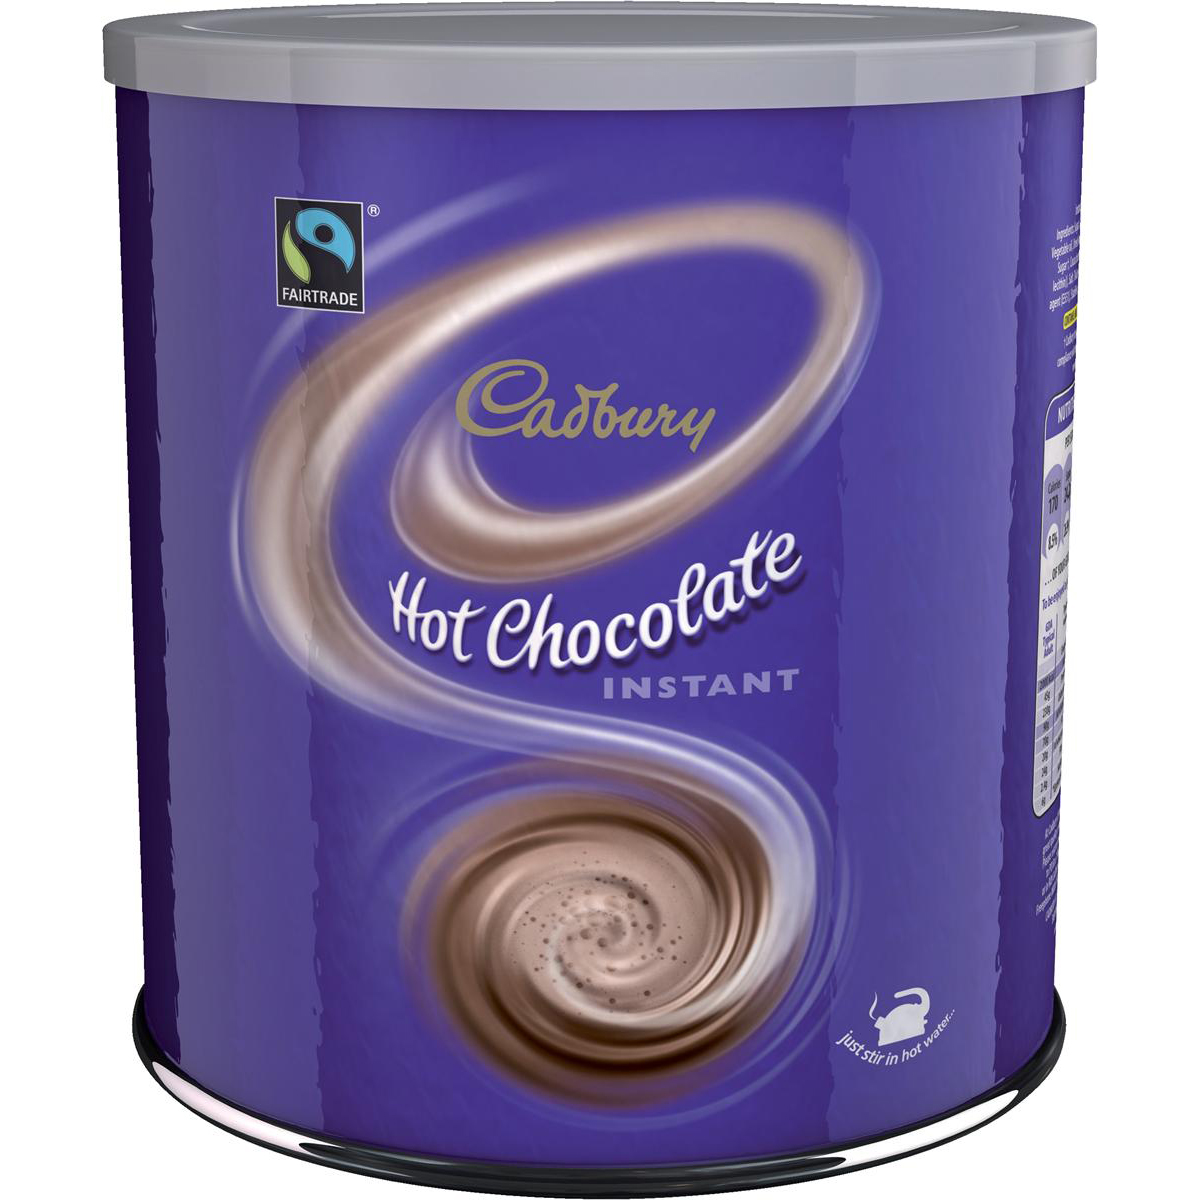 Hot Chocolate Cadbury Chocolate Break Fairtrade Hot Chocolate Powder 70 Servings 2Kg Ref 403136